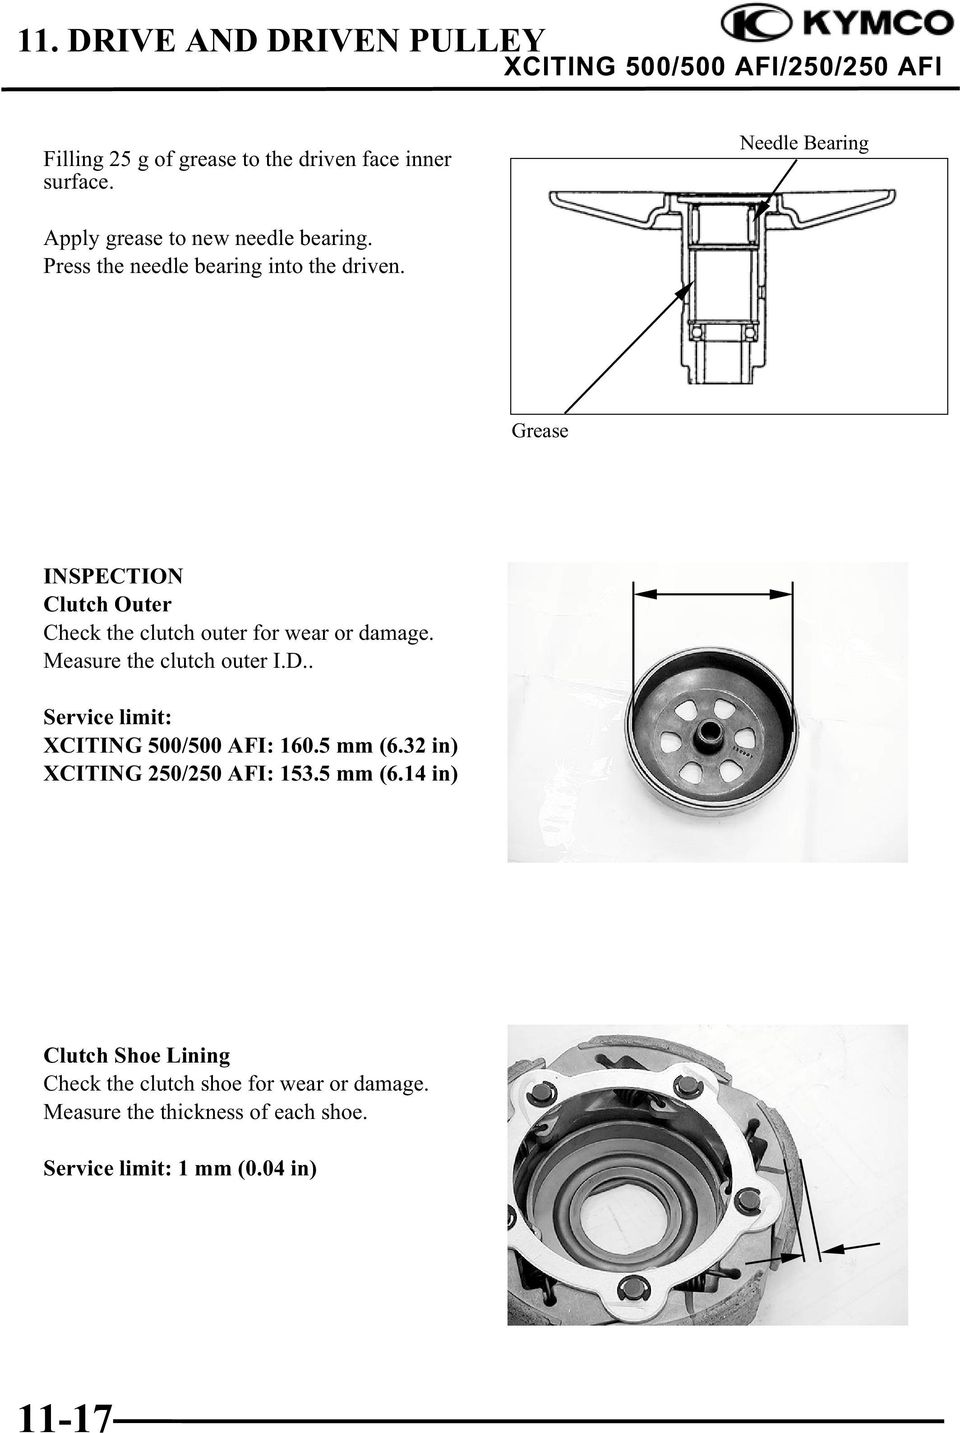 Measure the clutch outer I.D.. Service limit: XCITING 500/500 AFI: 160.5 mm (6.